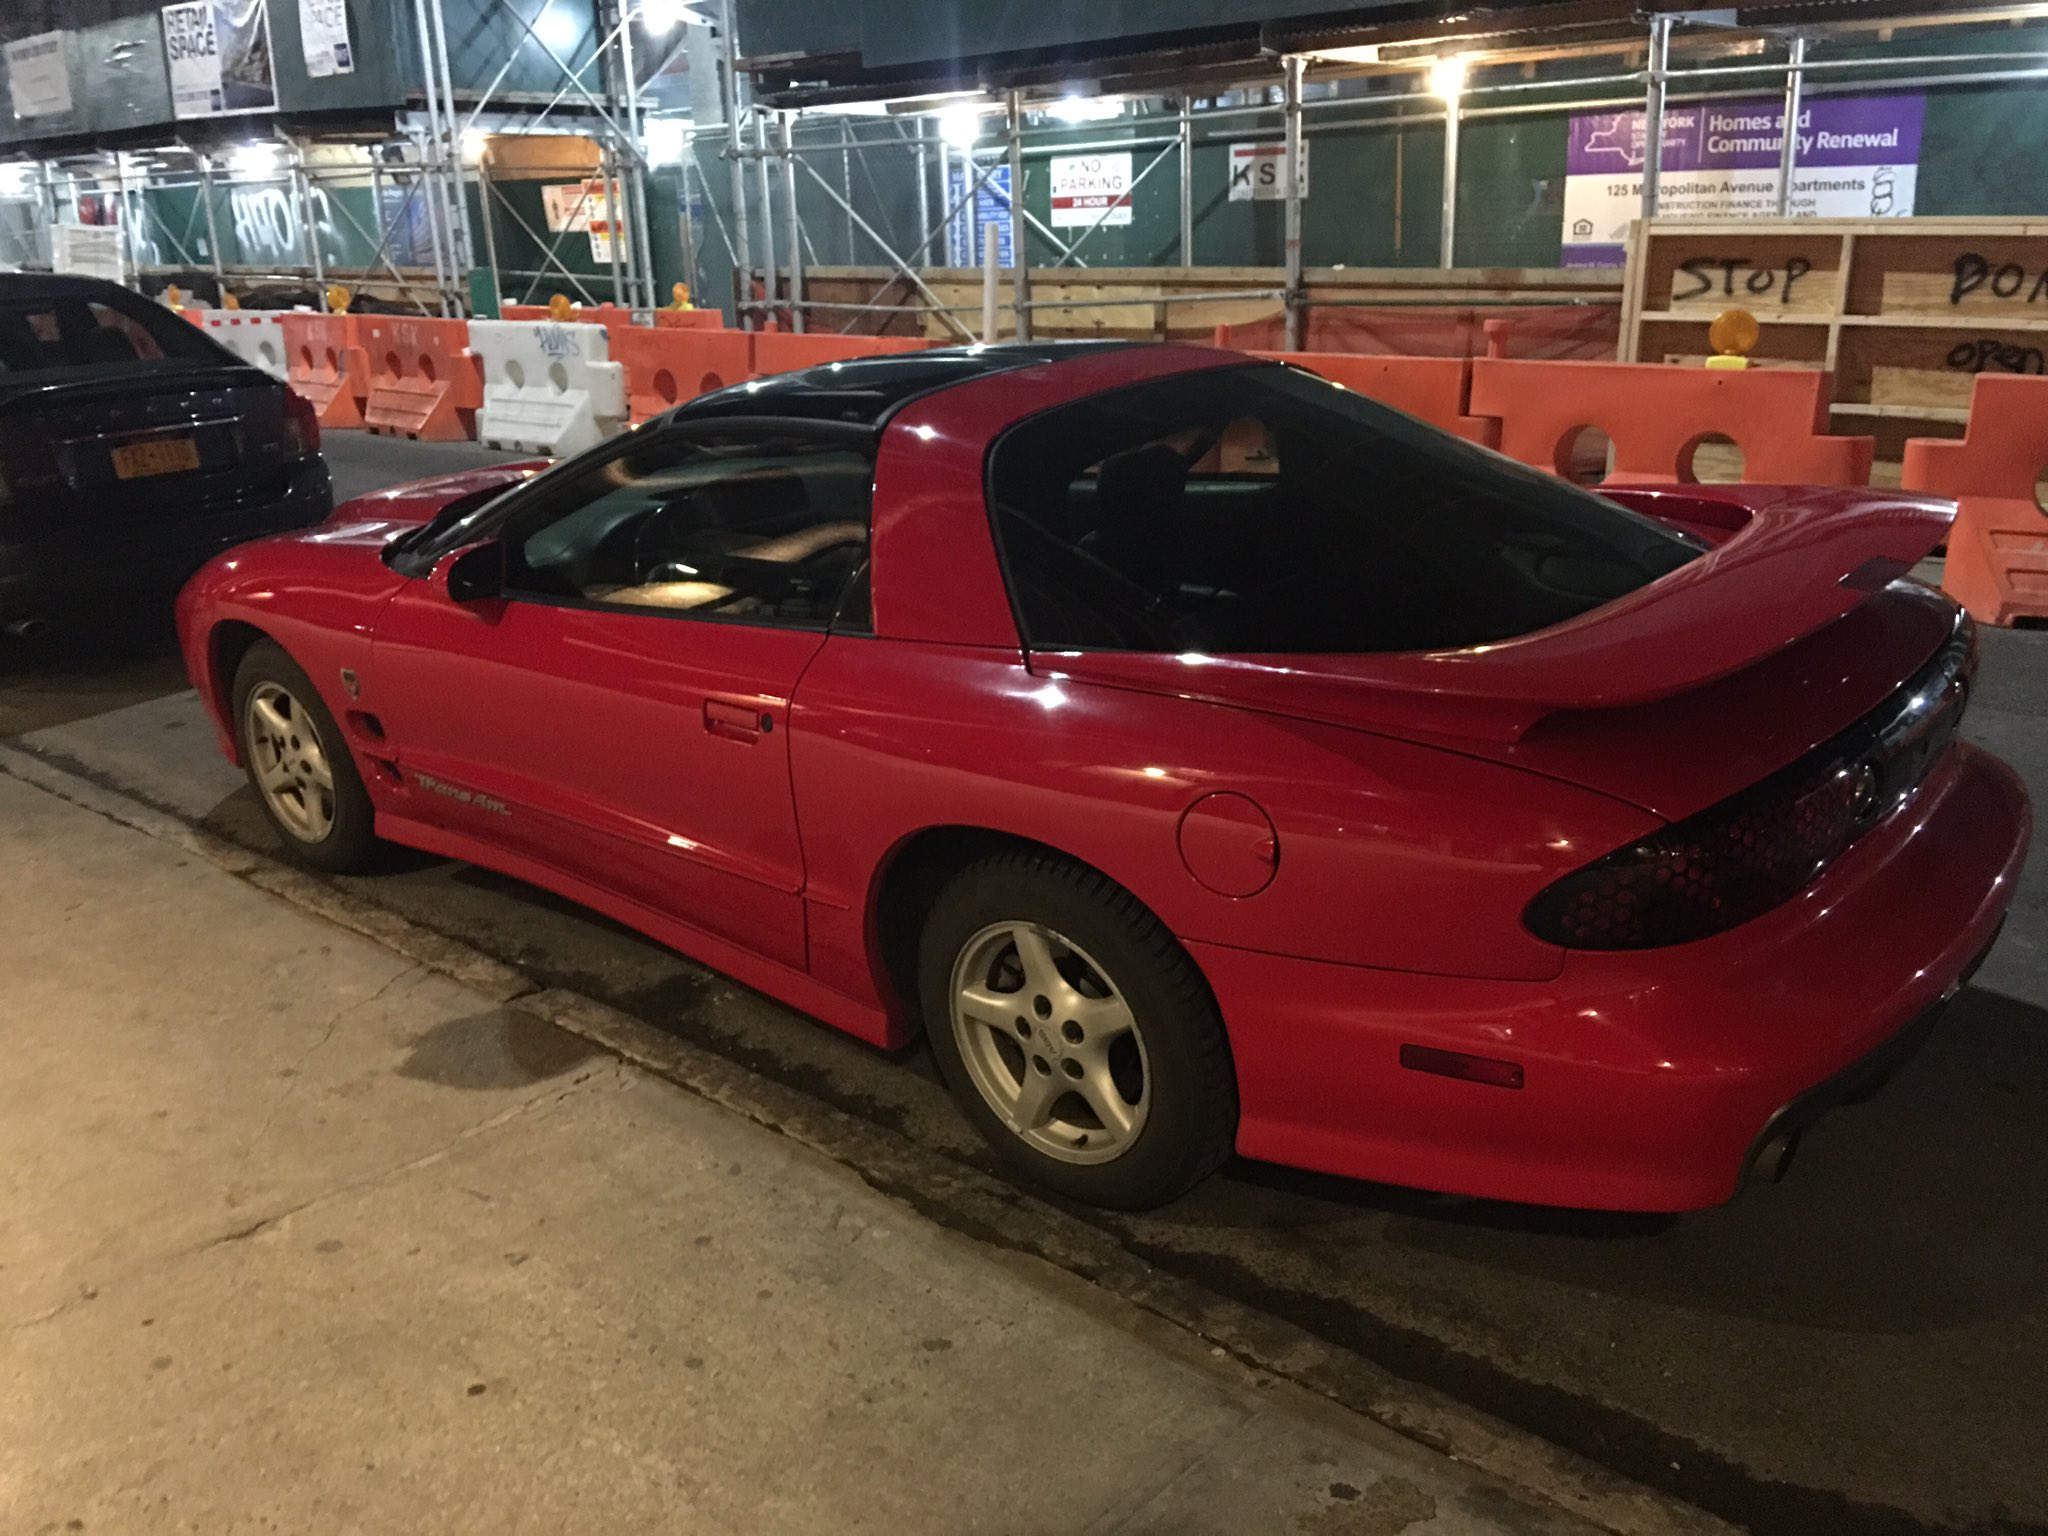 Life can be pretty aimless but just remember someone rolled up tonight in a mint 94 Trans Am https://t.co/HipB4sbRyQ